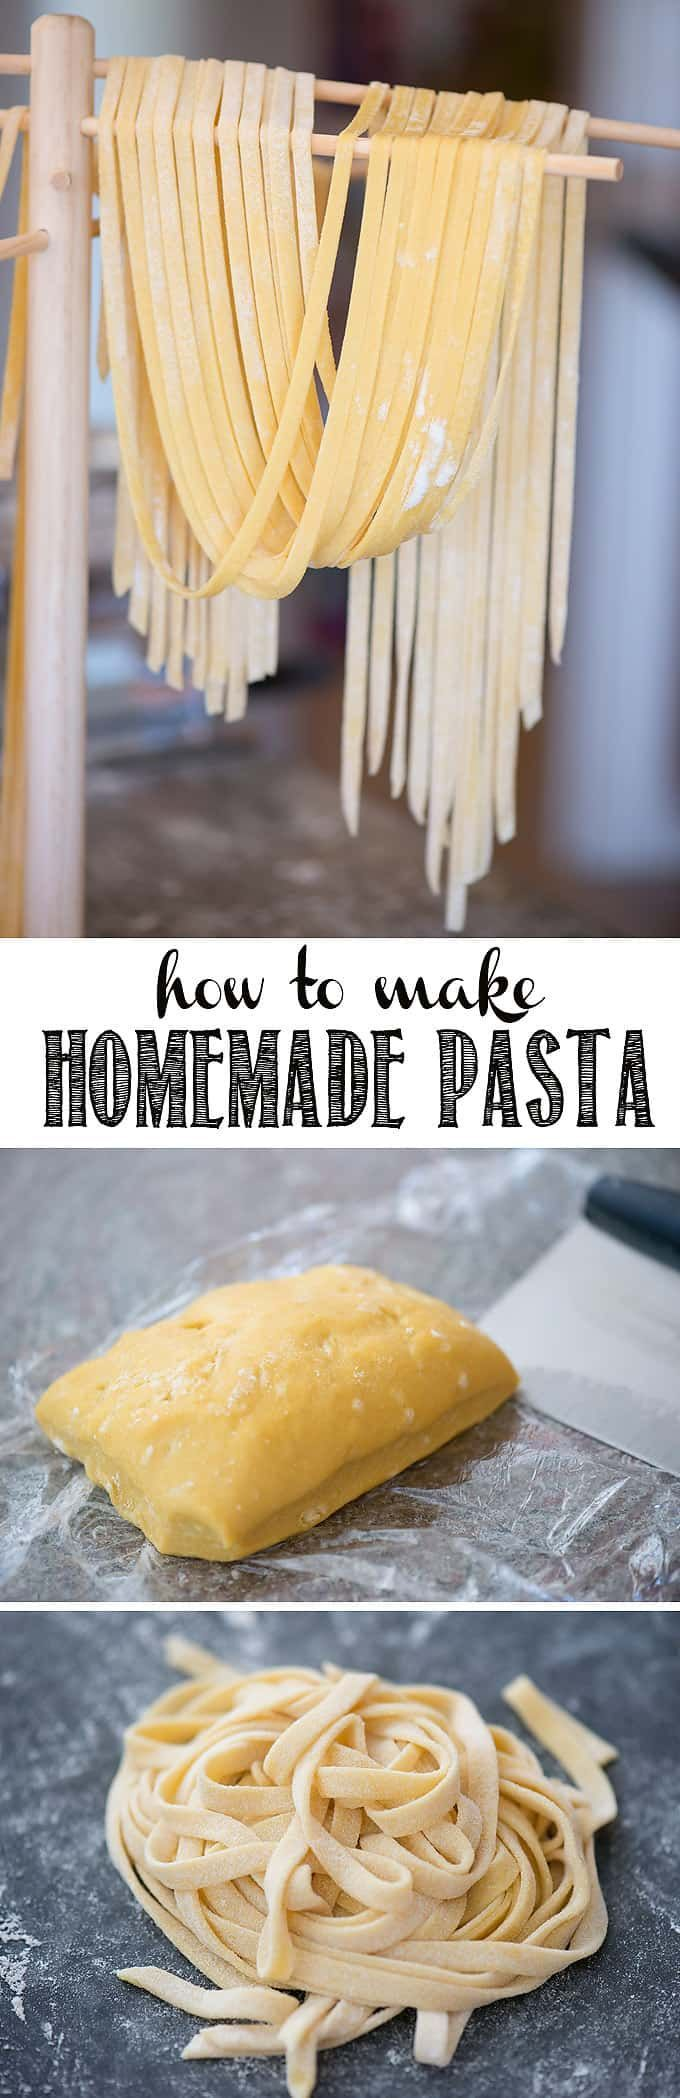 Homemade Pasta is not only fun and easy recipe to make in your own kitchen, but nothing compares to the taste and texture of fresh homemade pasta. Whether you want to knead and cut the dough by hand, or you use a kitchenaid to mix and a roller to flatten and cut, I'll share all of my homemade pasta tips & tricks! #pasta #homemadepasta